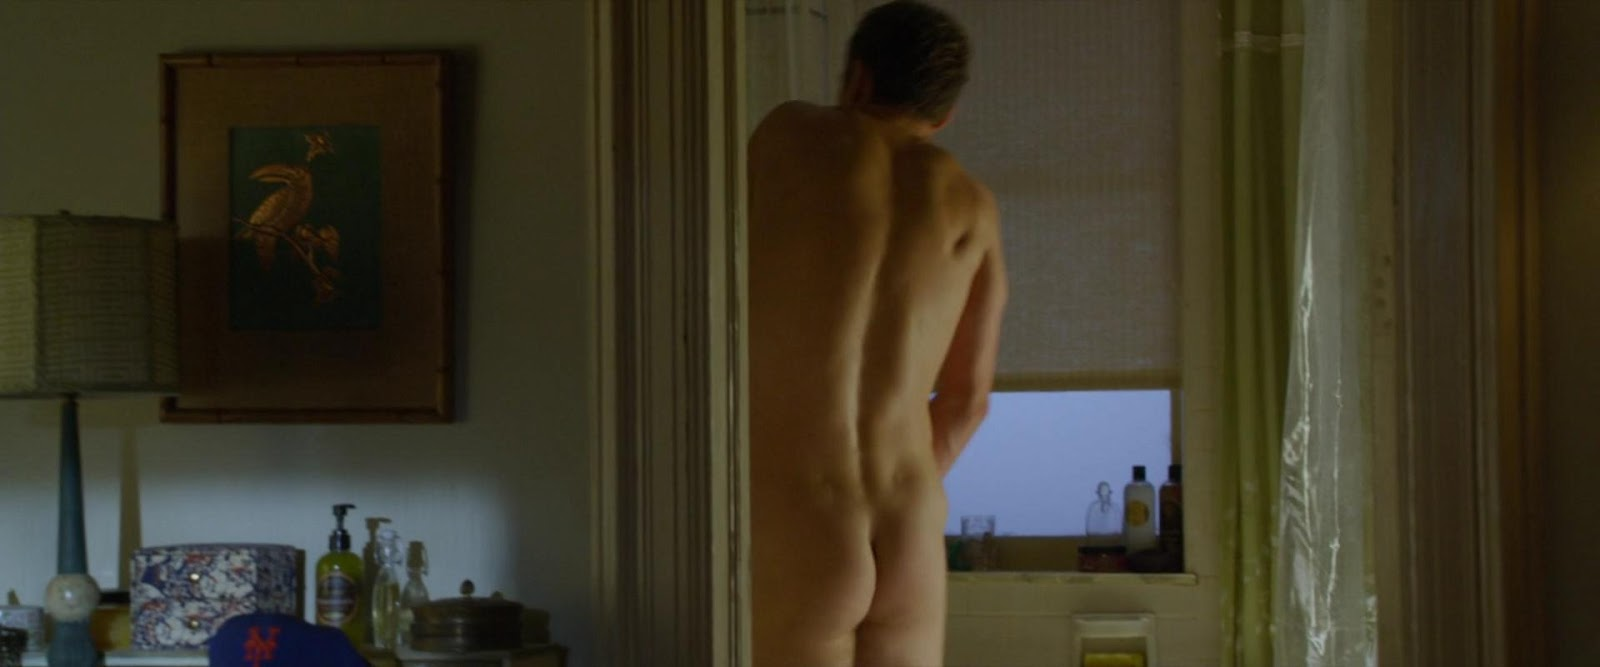 Friends with benefits 13 in the shadows 8